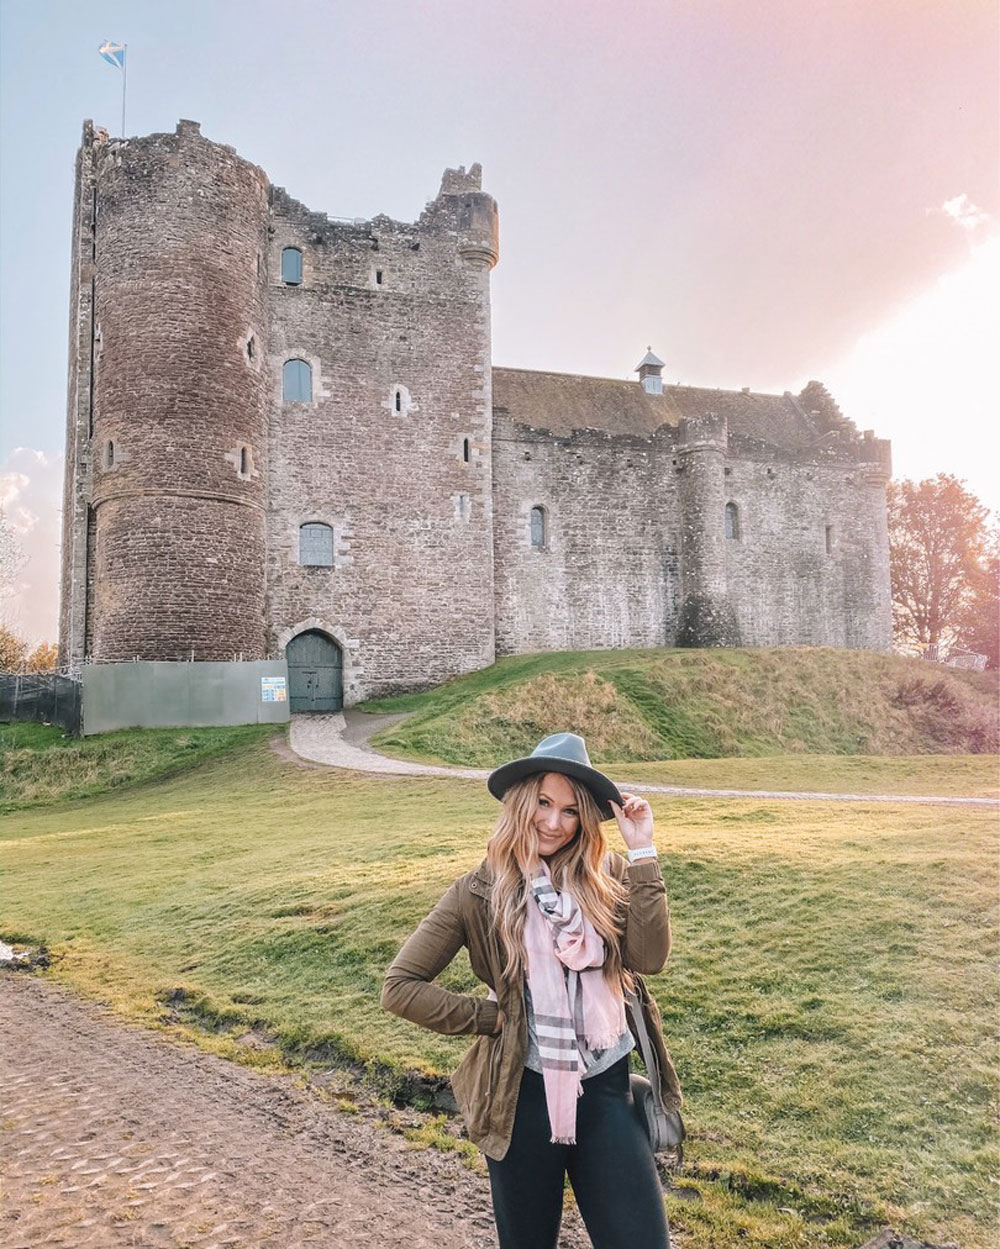 Travel blogger Amanda Martin visits Doune Castle in Scotland